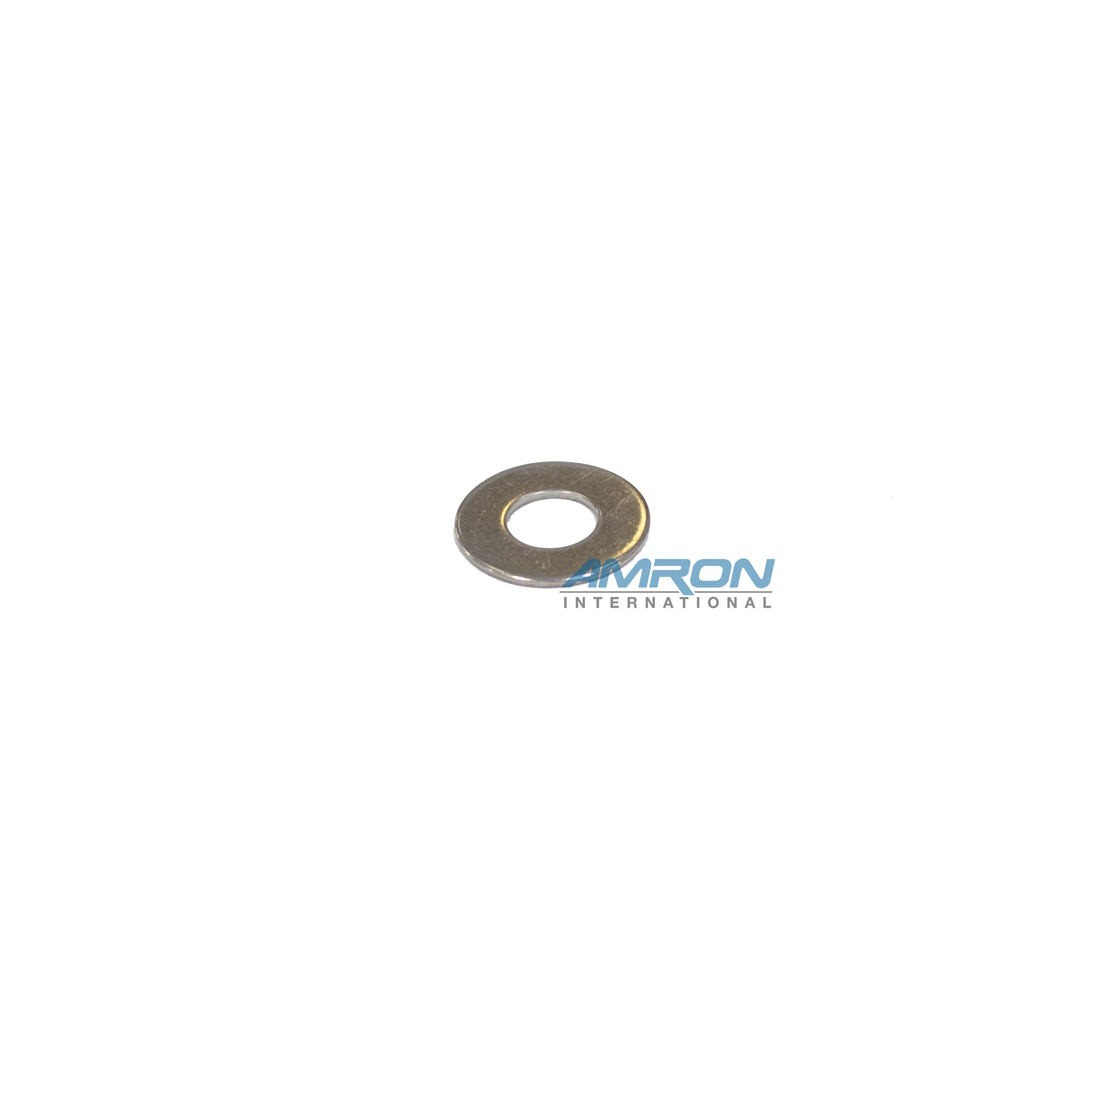 Kirby Morgan 530-535 Washer